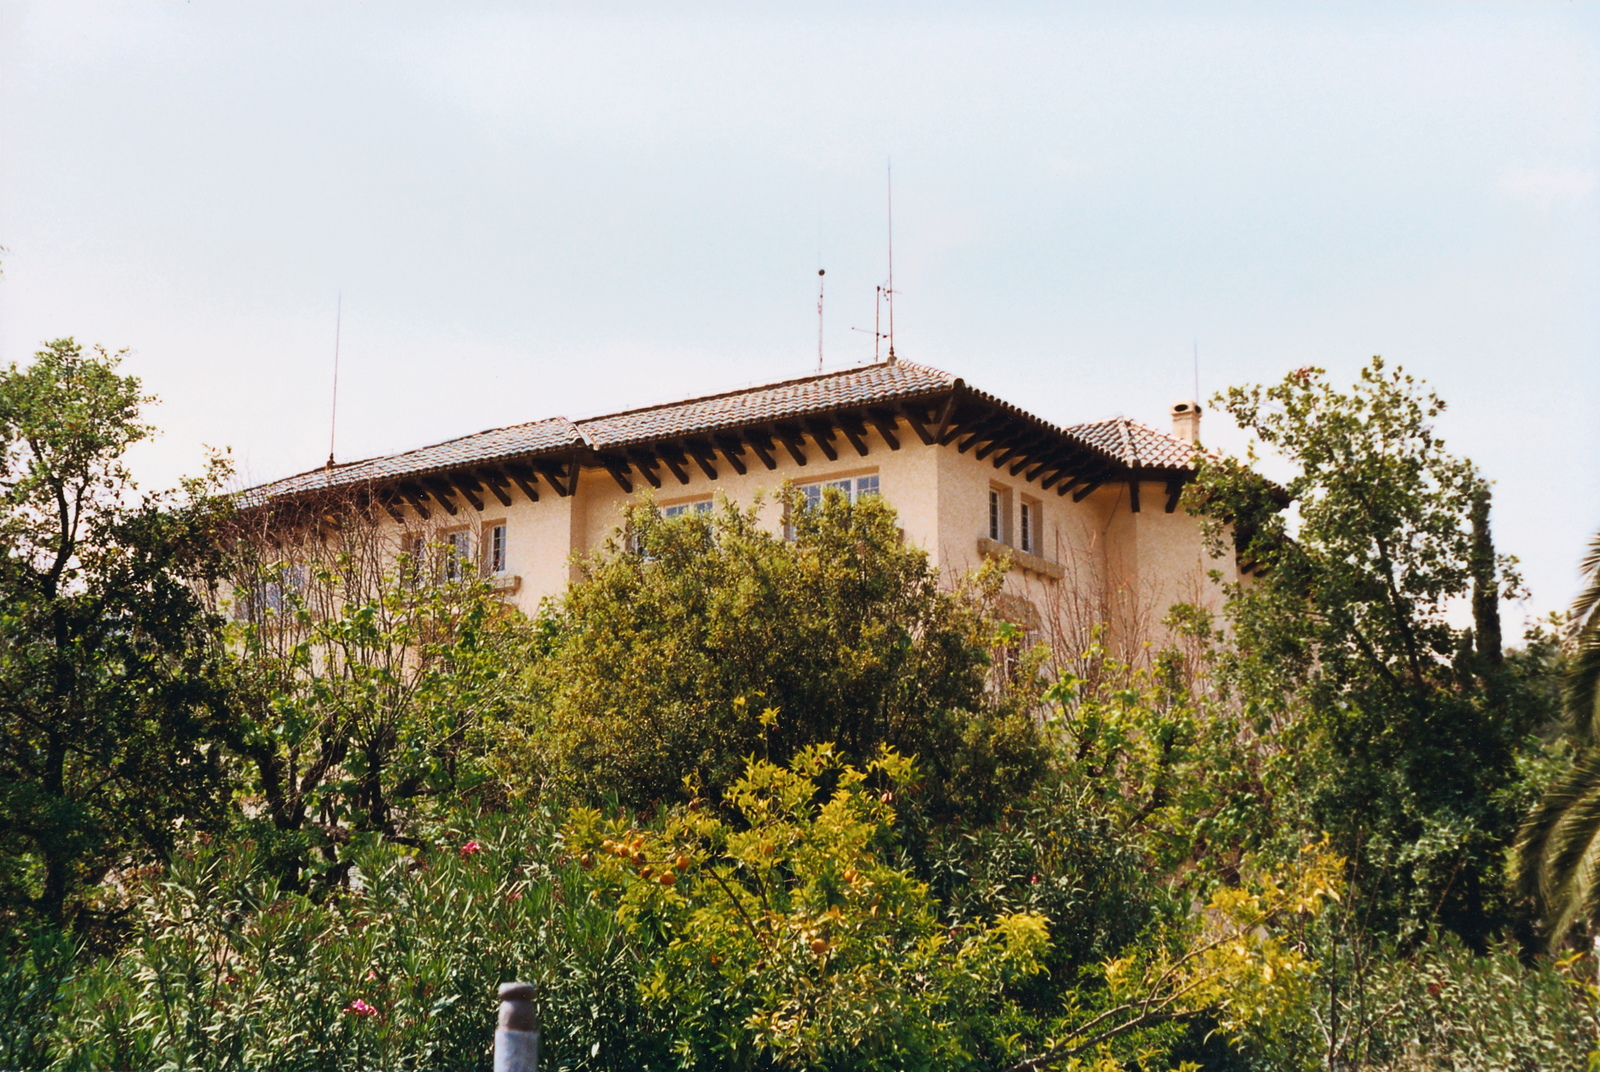 Barcelona - Consulate Office Building - 1990